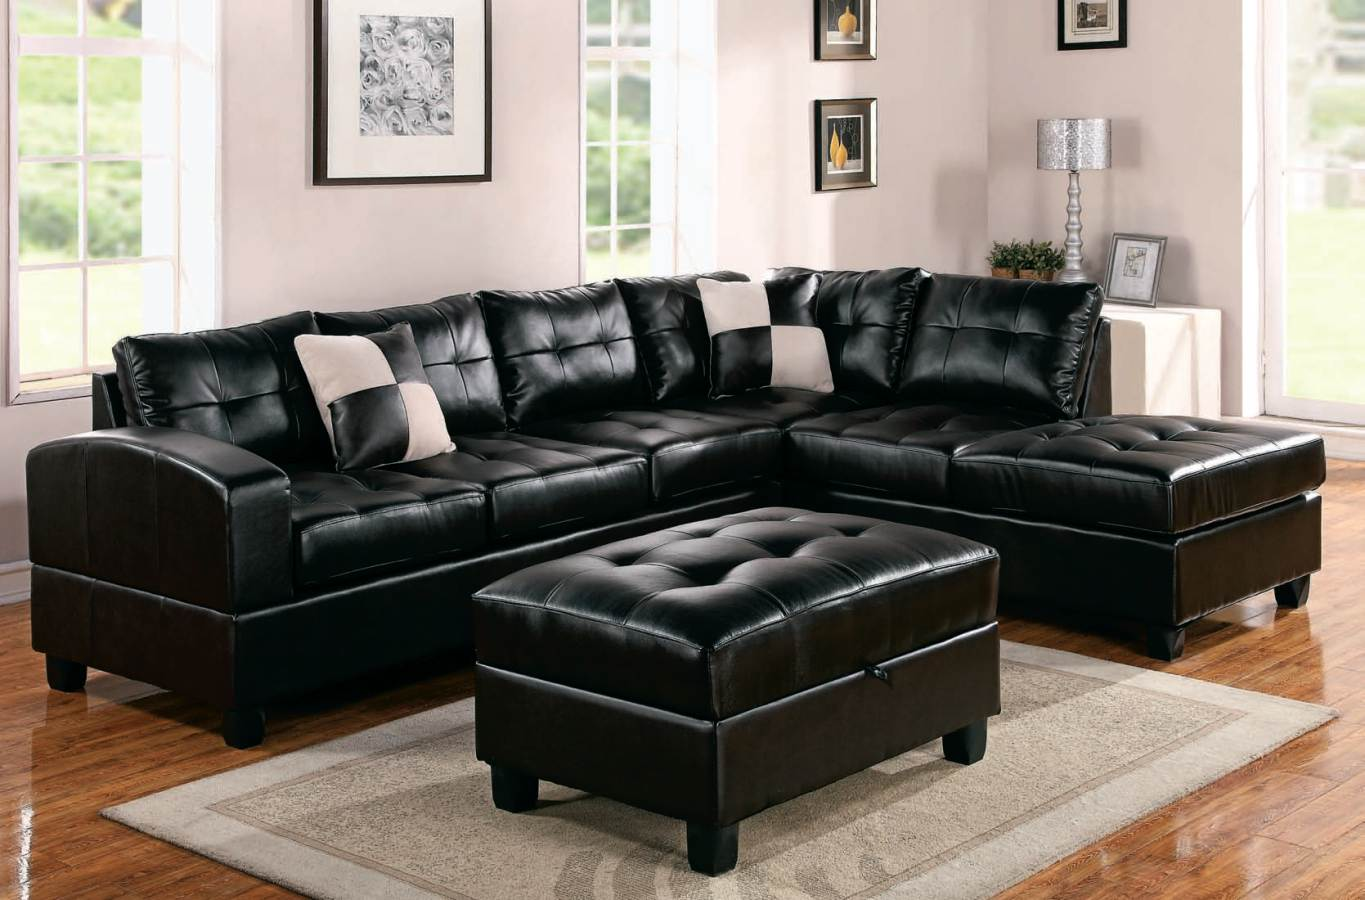 modern black leather sectional sofa home furniture design. Black Bedroom Furniture Sets. Home Design Ideas